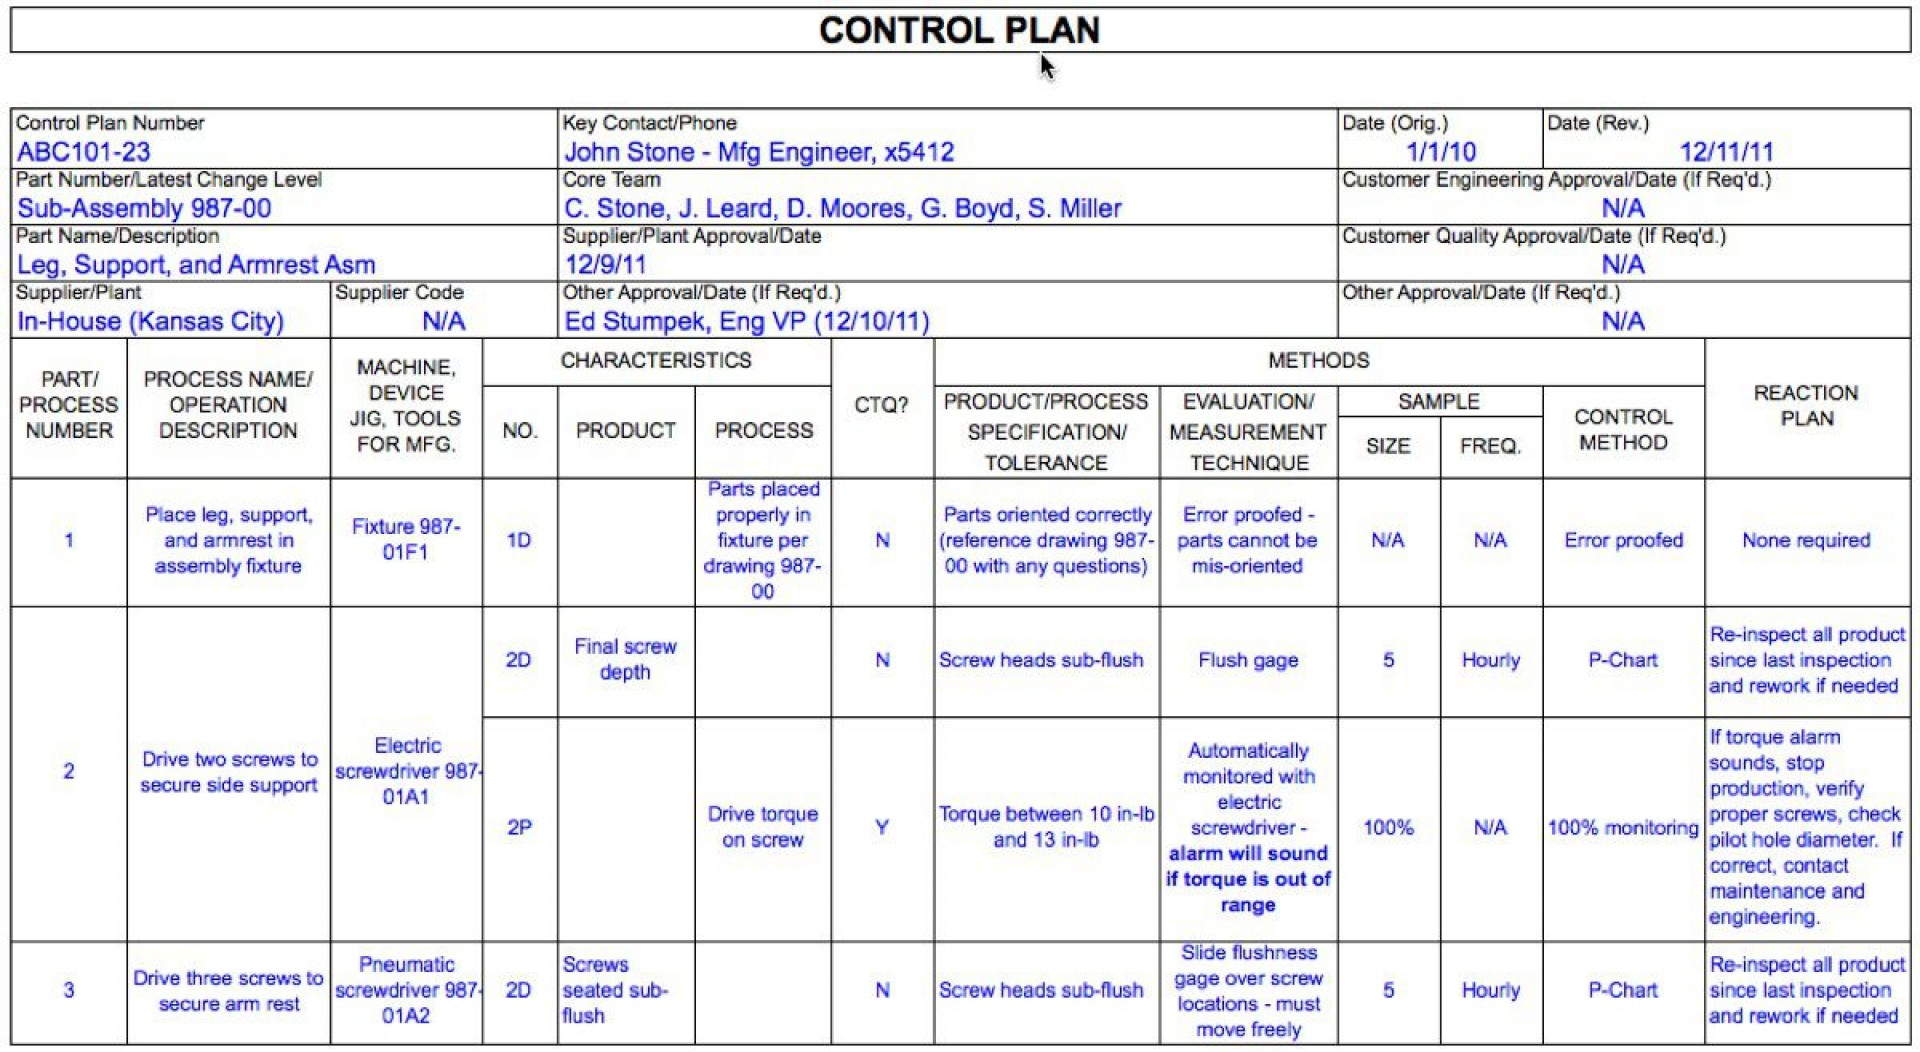 002 Unbelievable Quality Control Plan Template Sample  Templates Hud Busines Example Pdf1920